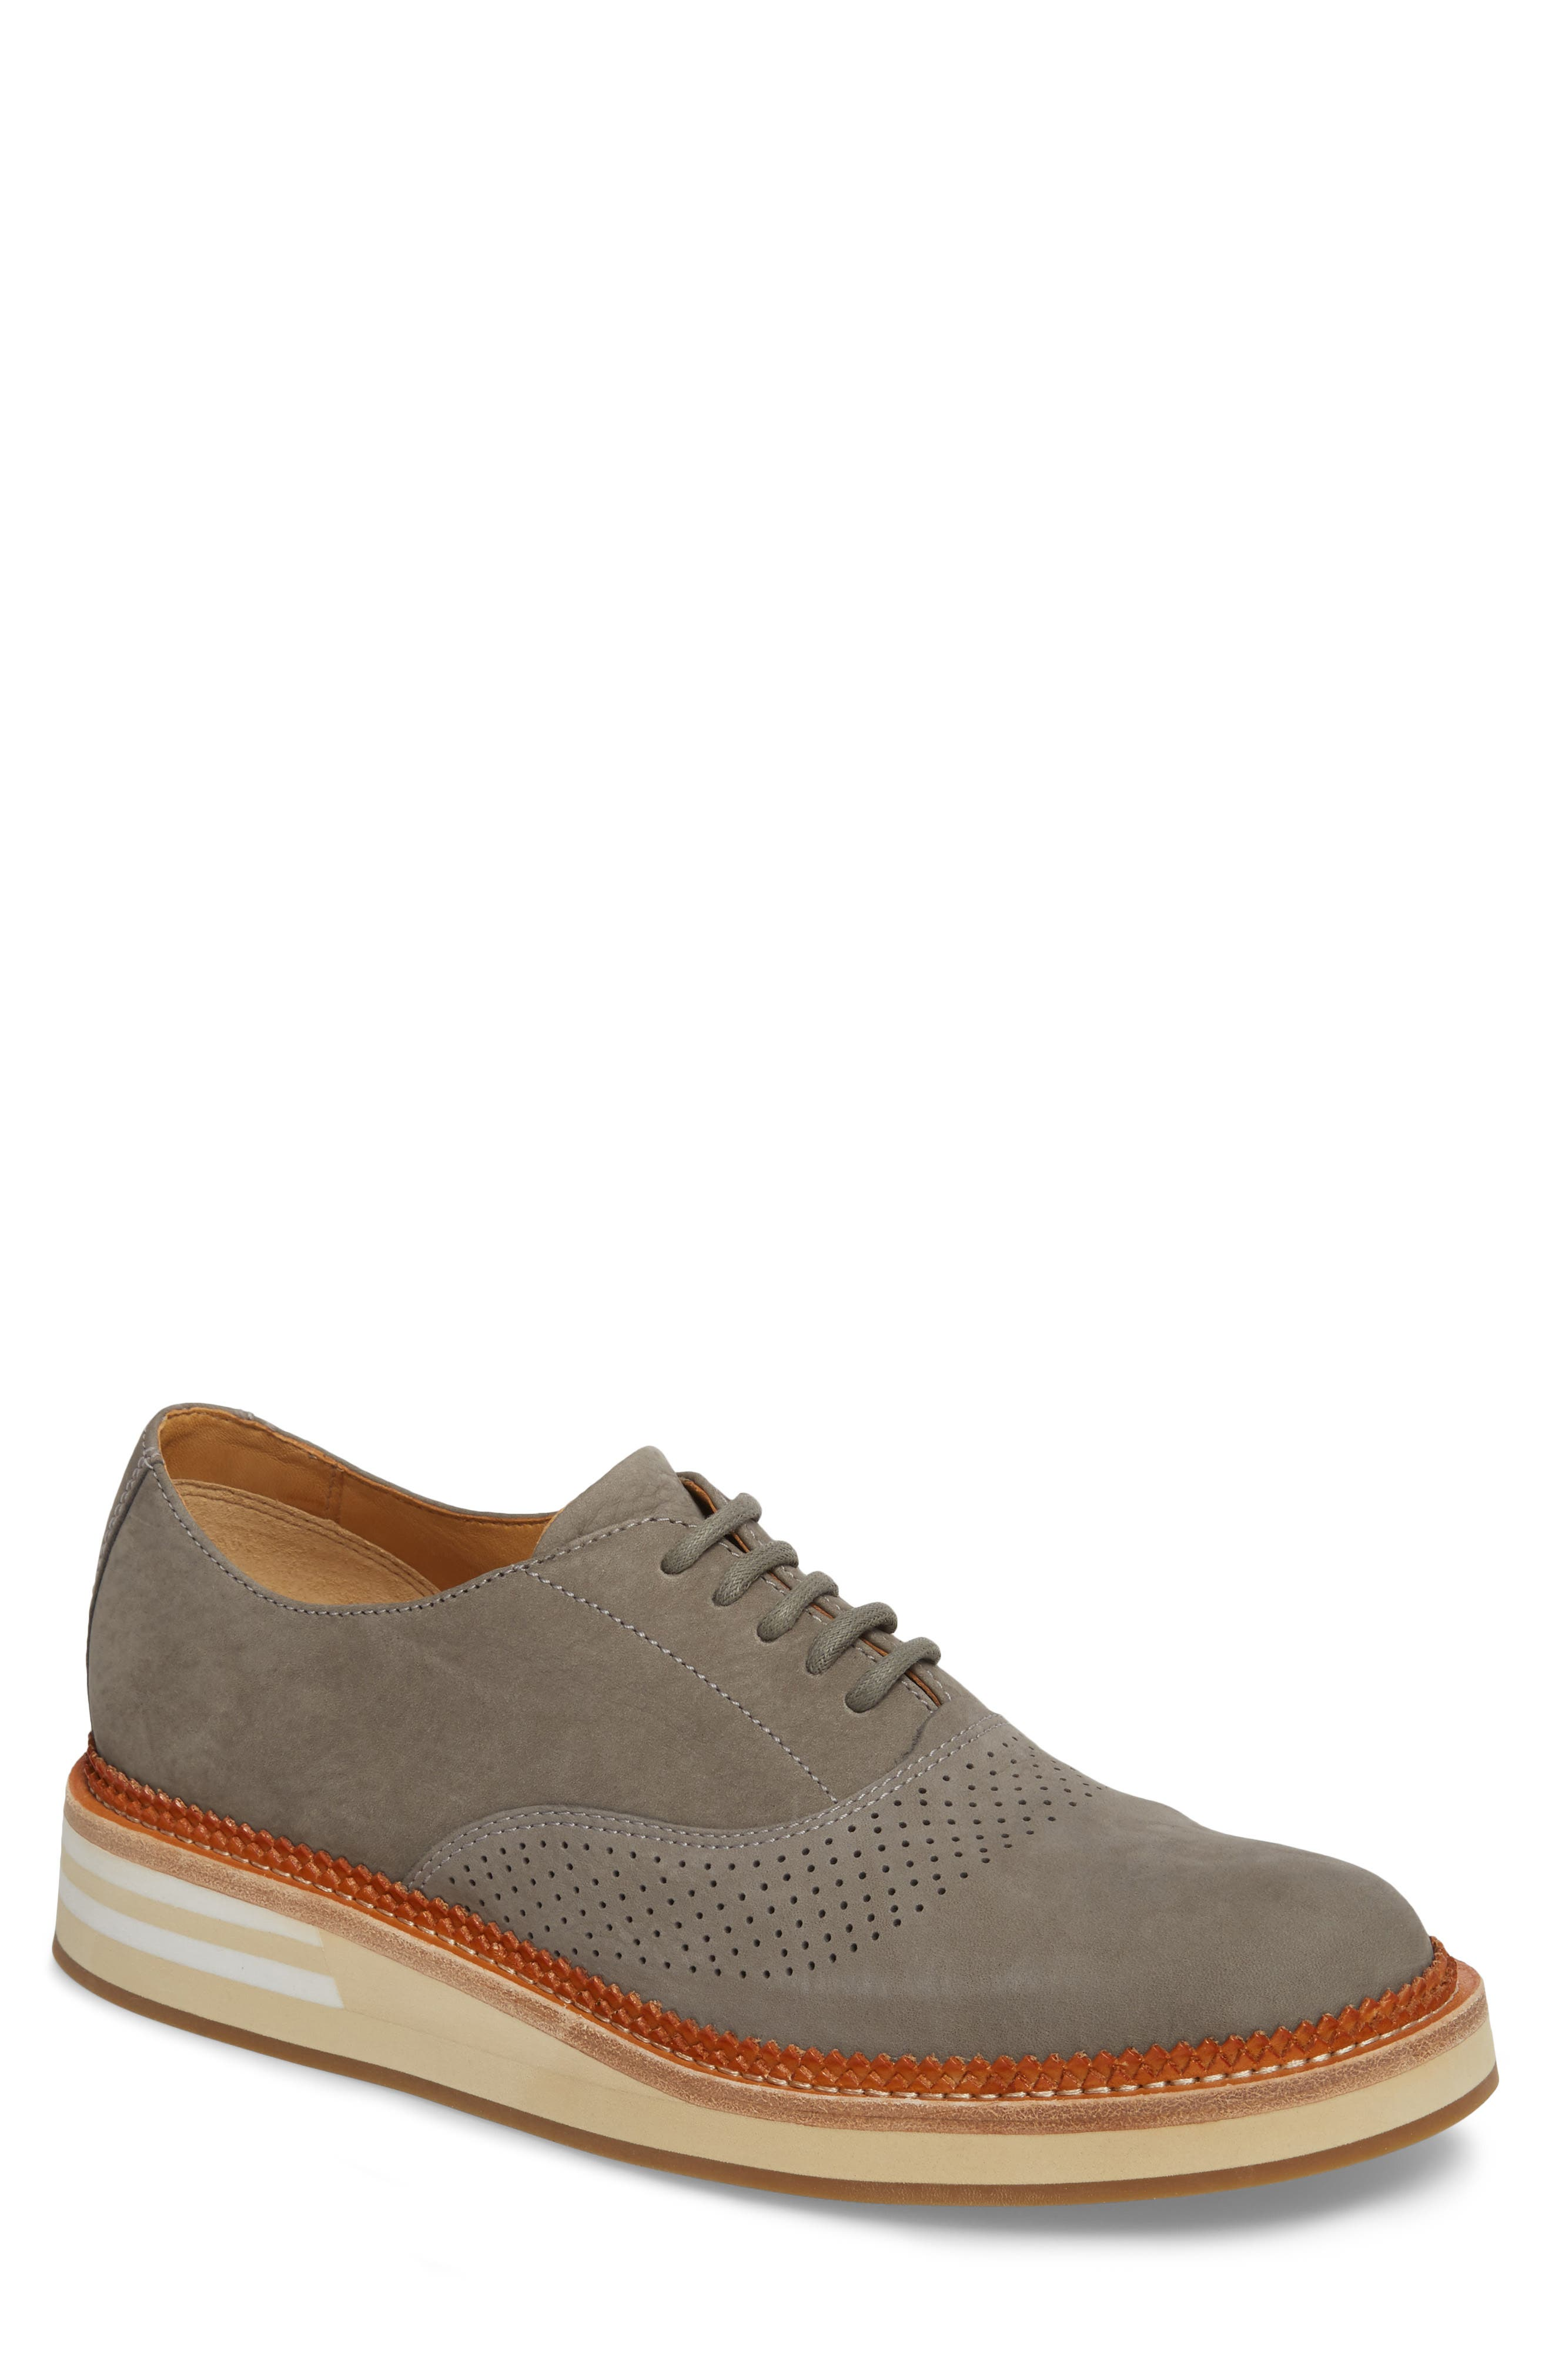 Cloud Perforated Oxford,                         Main,                         color, GREY